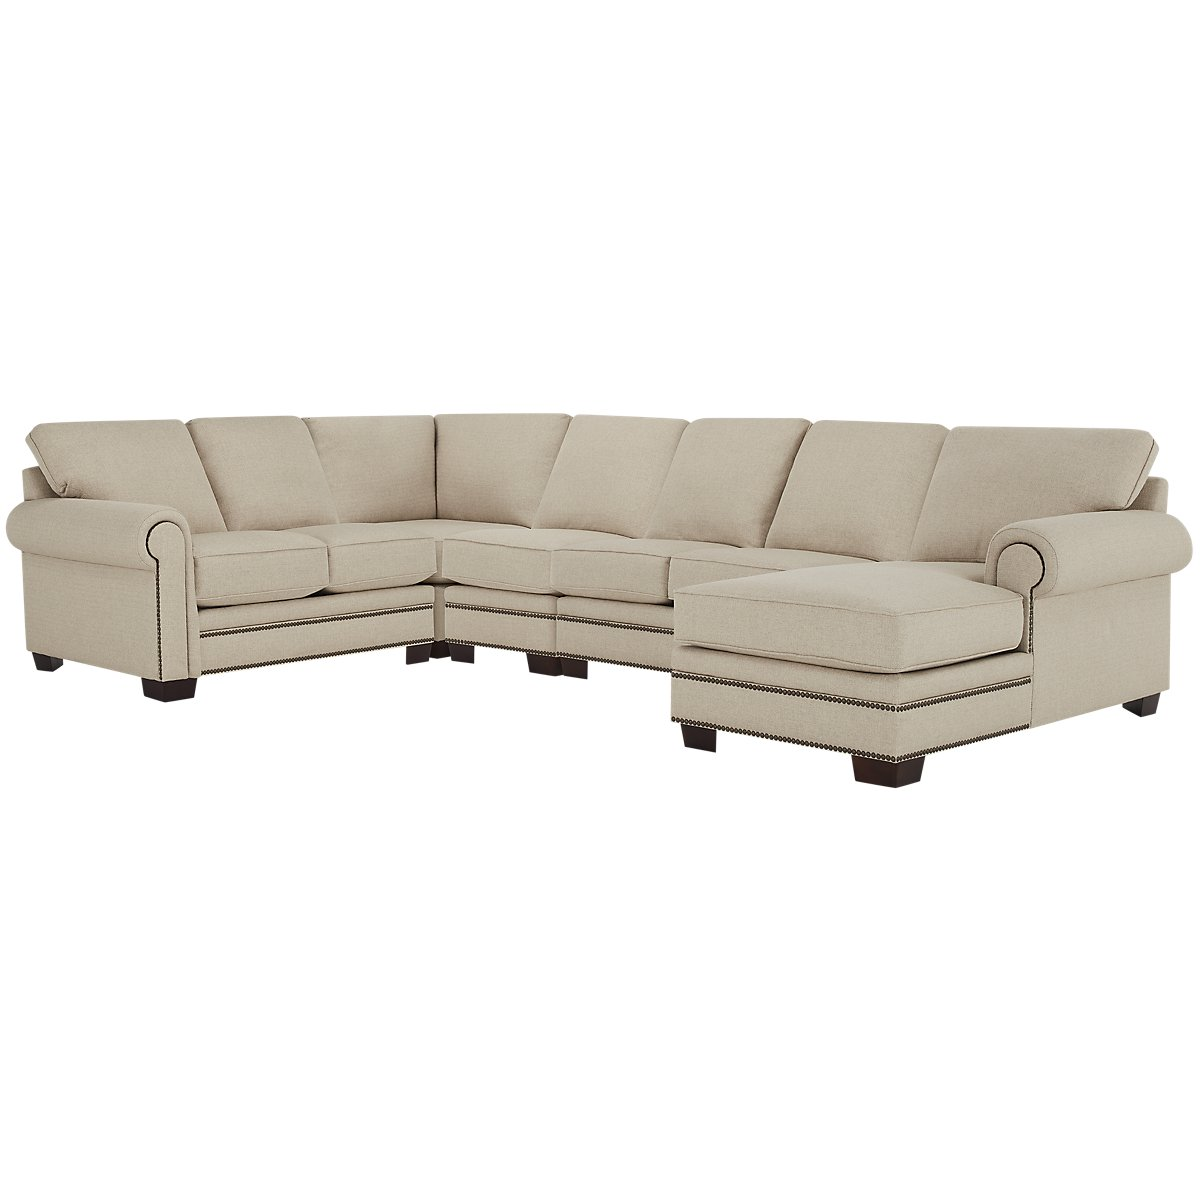 City furniture foster khaki fabric large right chaise for Chaise kaki